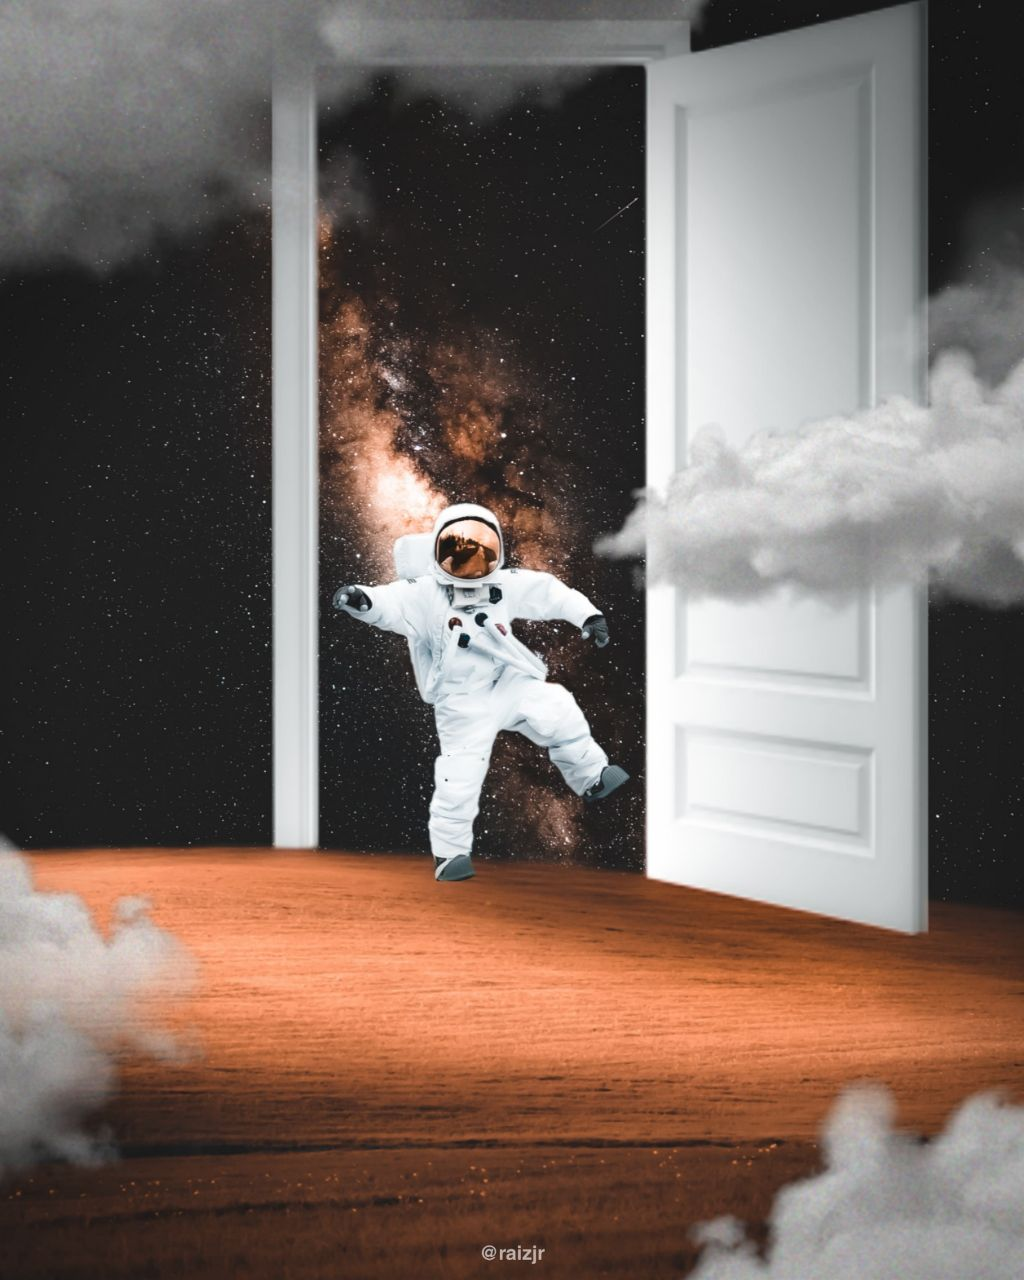 Lazy Astronaut.  #picsart #madewithpicsart #editing #art #stepbystep #visual #visualart #surreal #surrealart